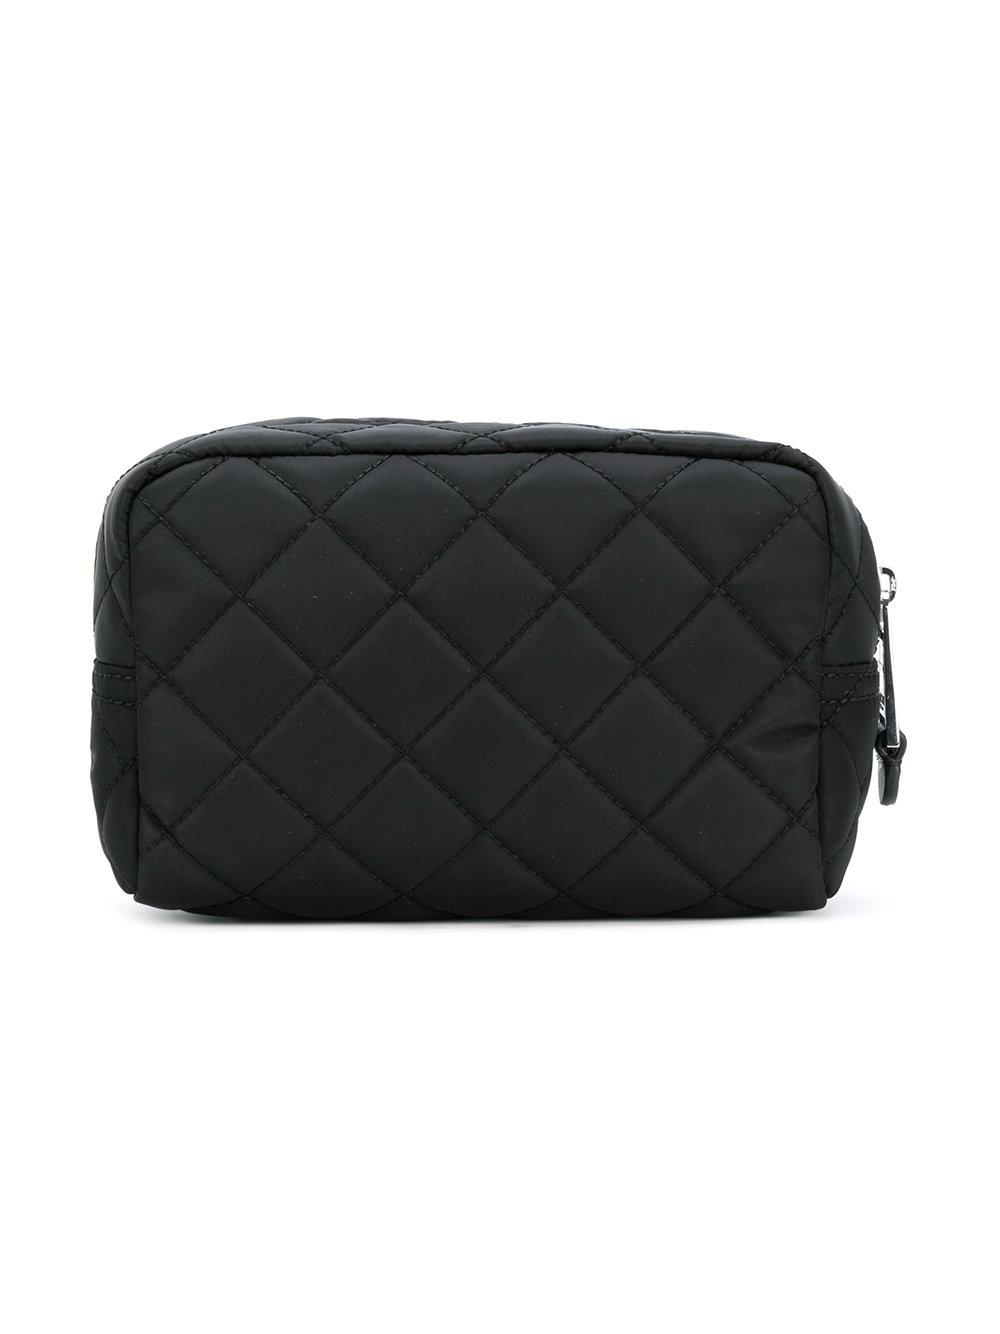 Discover Kate Spade New York's cosmetic cases collection. Browse our latest range of makeup cases excellent for travel or for simply keeping your handbag a little more organised and stylish. Free shipping over £ available from the official UK online store.